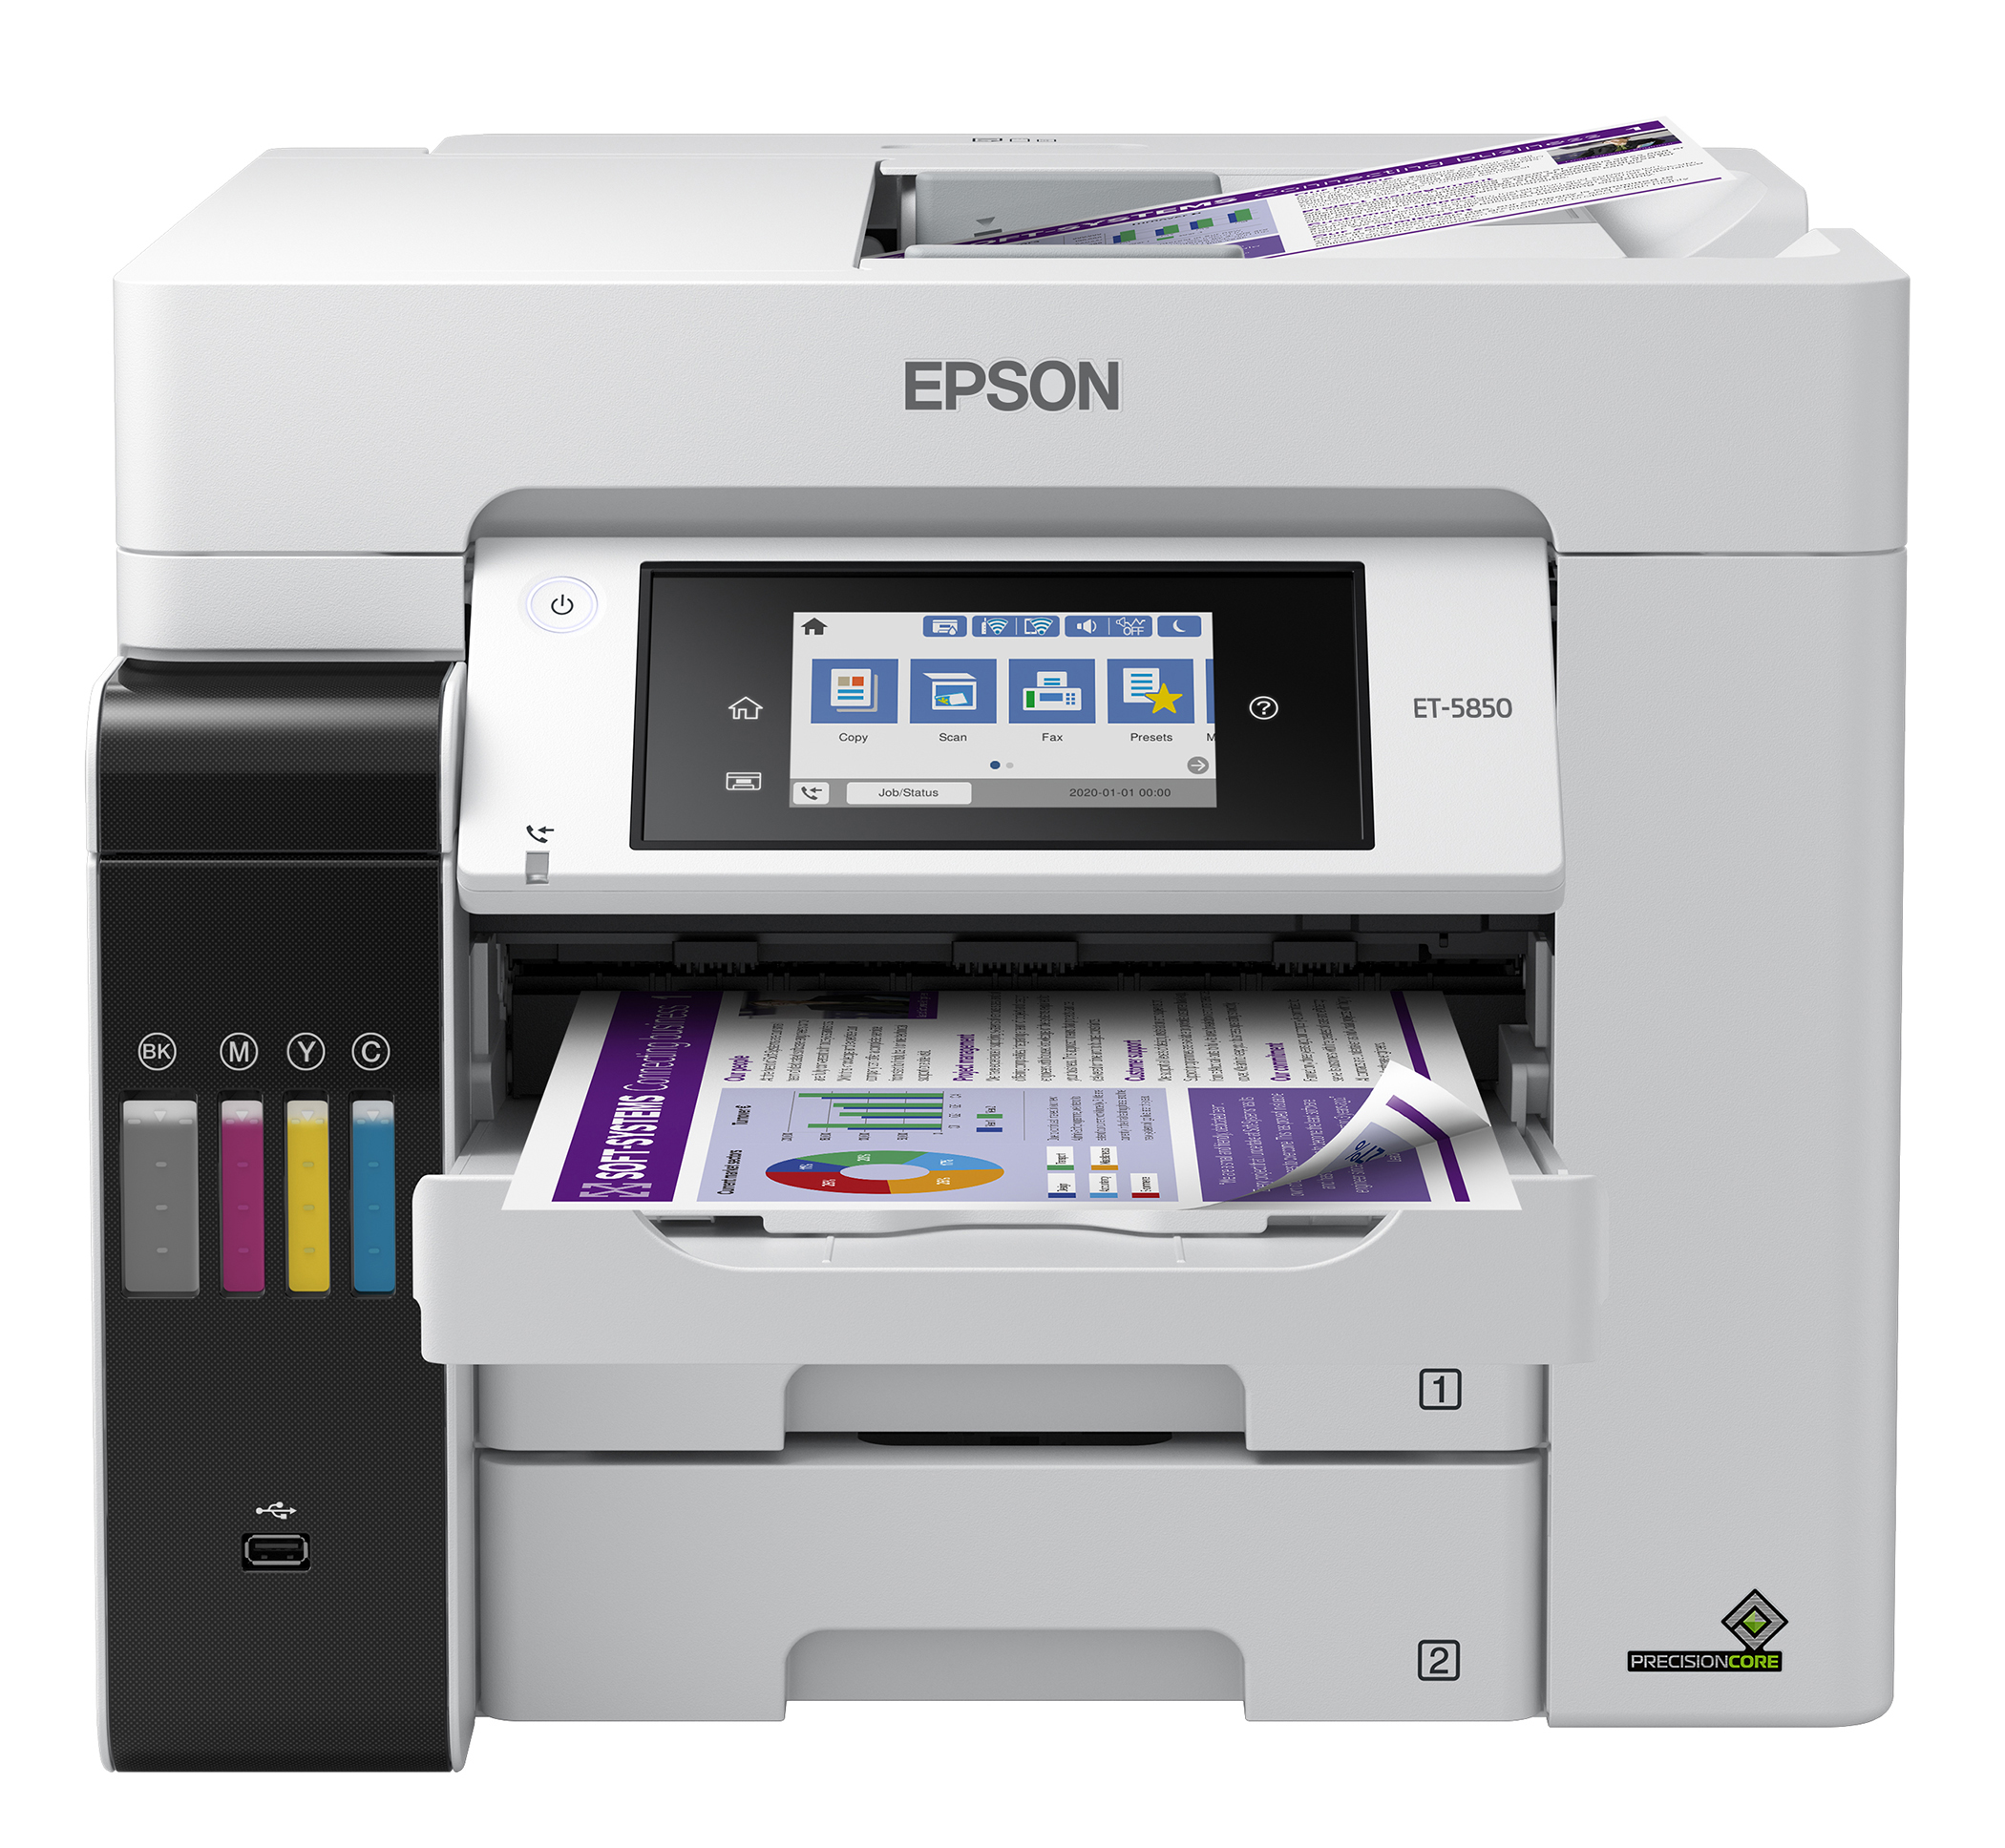 The EcoTank Pro ET-5850 wireless all-in-one printer offers fast cartridge-free printing with easy-to-fill supersized ink tanks, designed to provide reliable, cost-effective and feature-rich printing to small businesses, home offices and workgroups